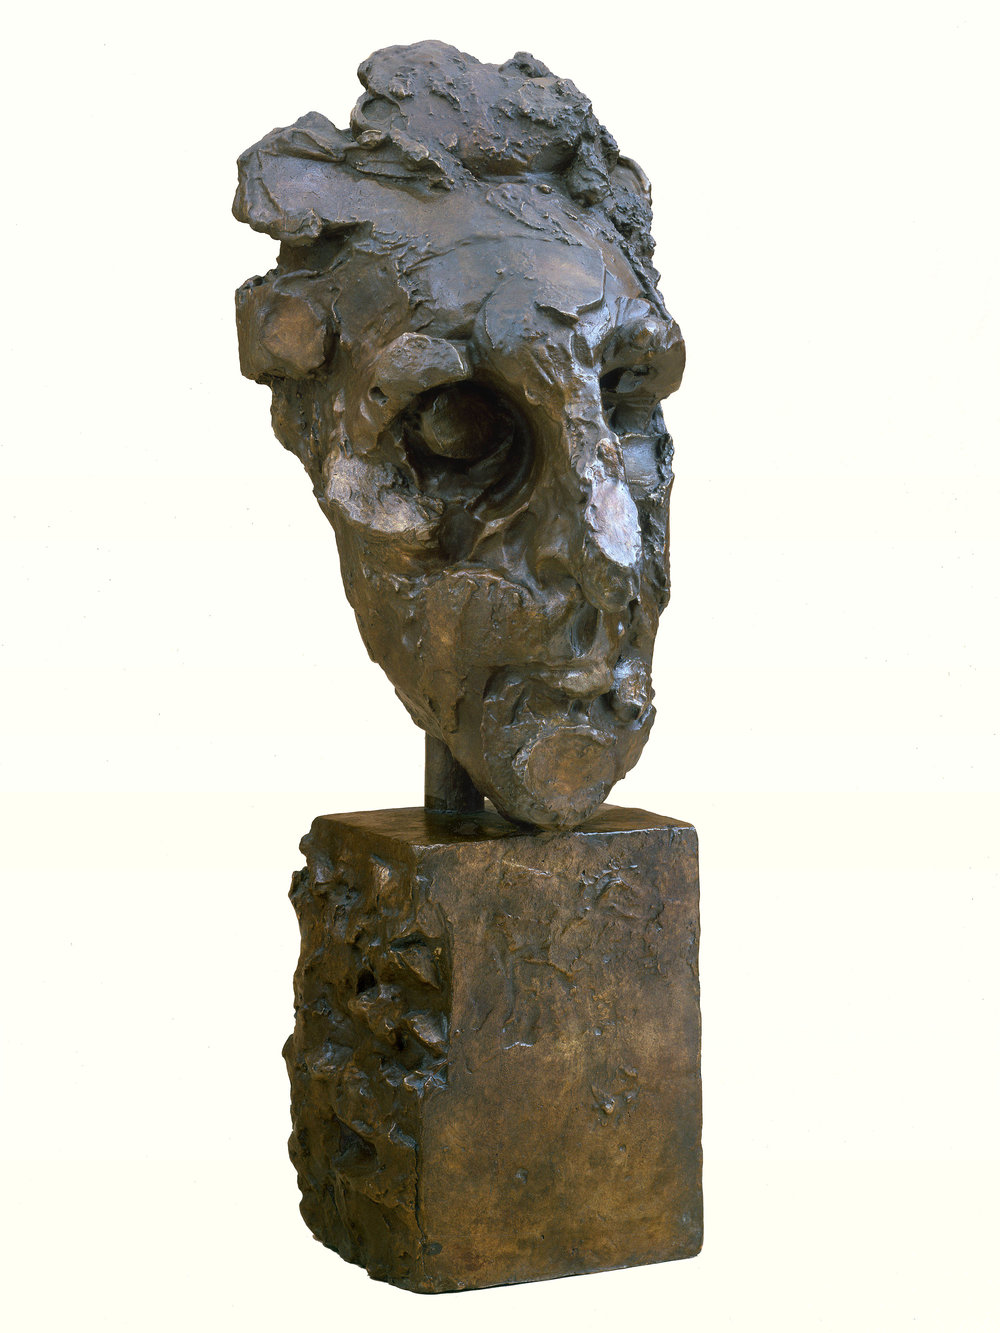 "Portrait Head of Marcel   Duchamp     1943, bronze 22 x 8 ½ x 10"" Hirshhorn Museum, Smithsonian Institution, Washington, DC; Honolulu Academy of Arts, Honolulu, HA; Delaware Art Museum, Wilmington, DE; Philadelphia Museum of Art, PA; private collections 30.002"